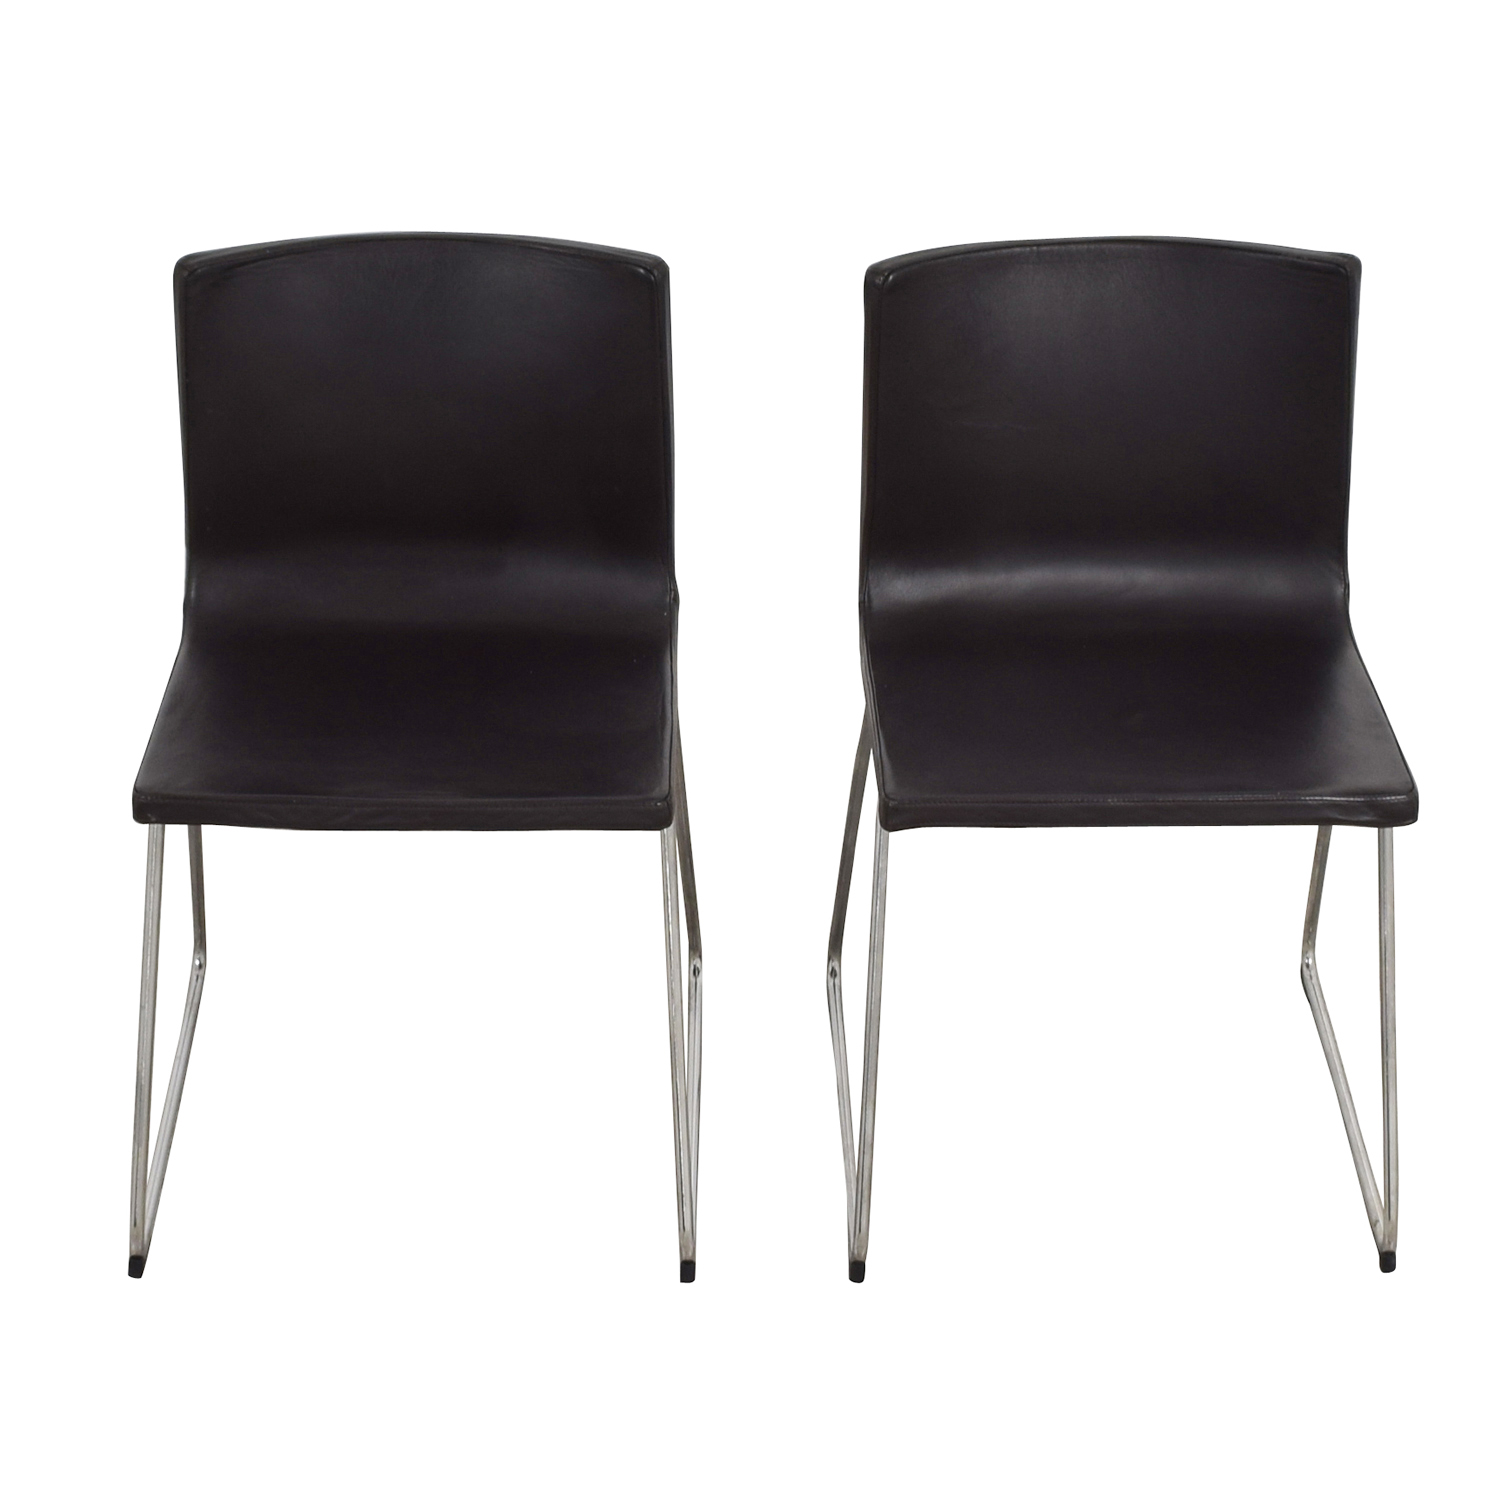 52 Off Ikea Ikea Black Accent Chairs Chairs